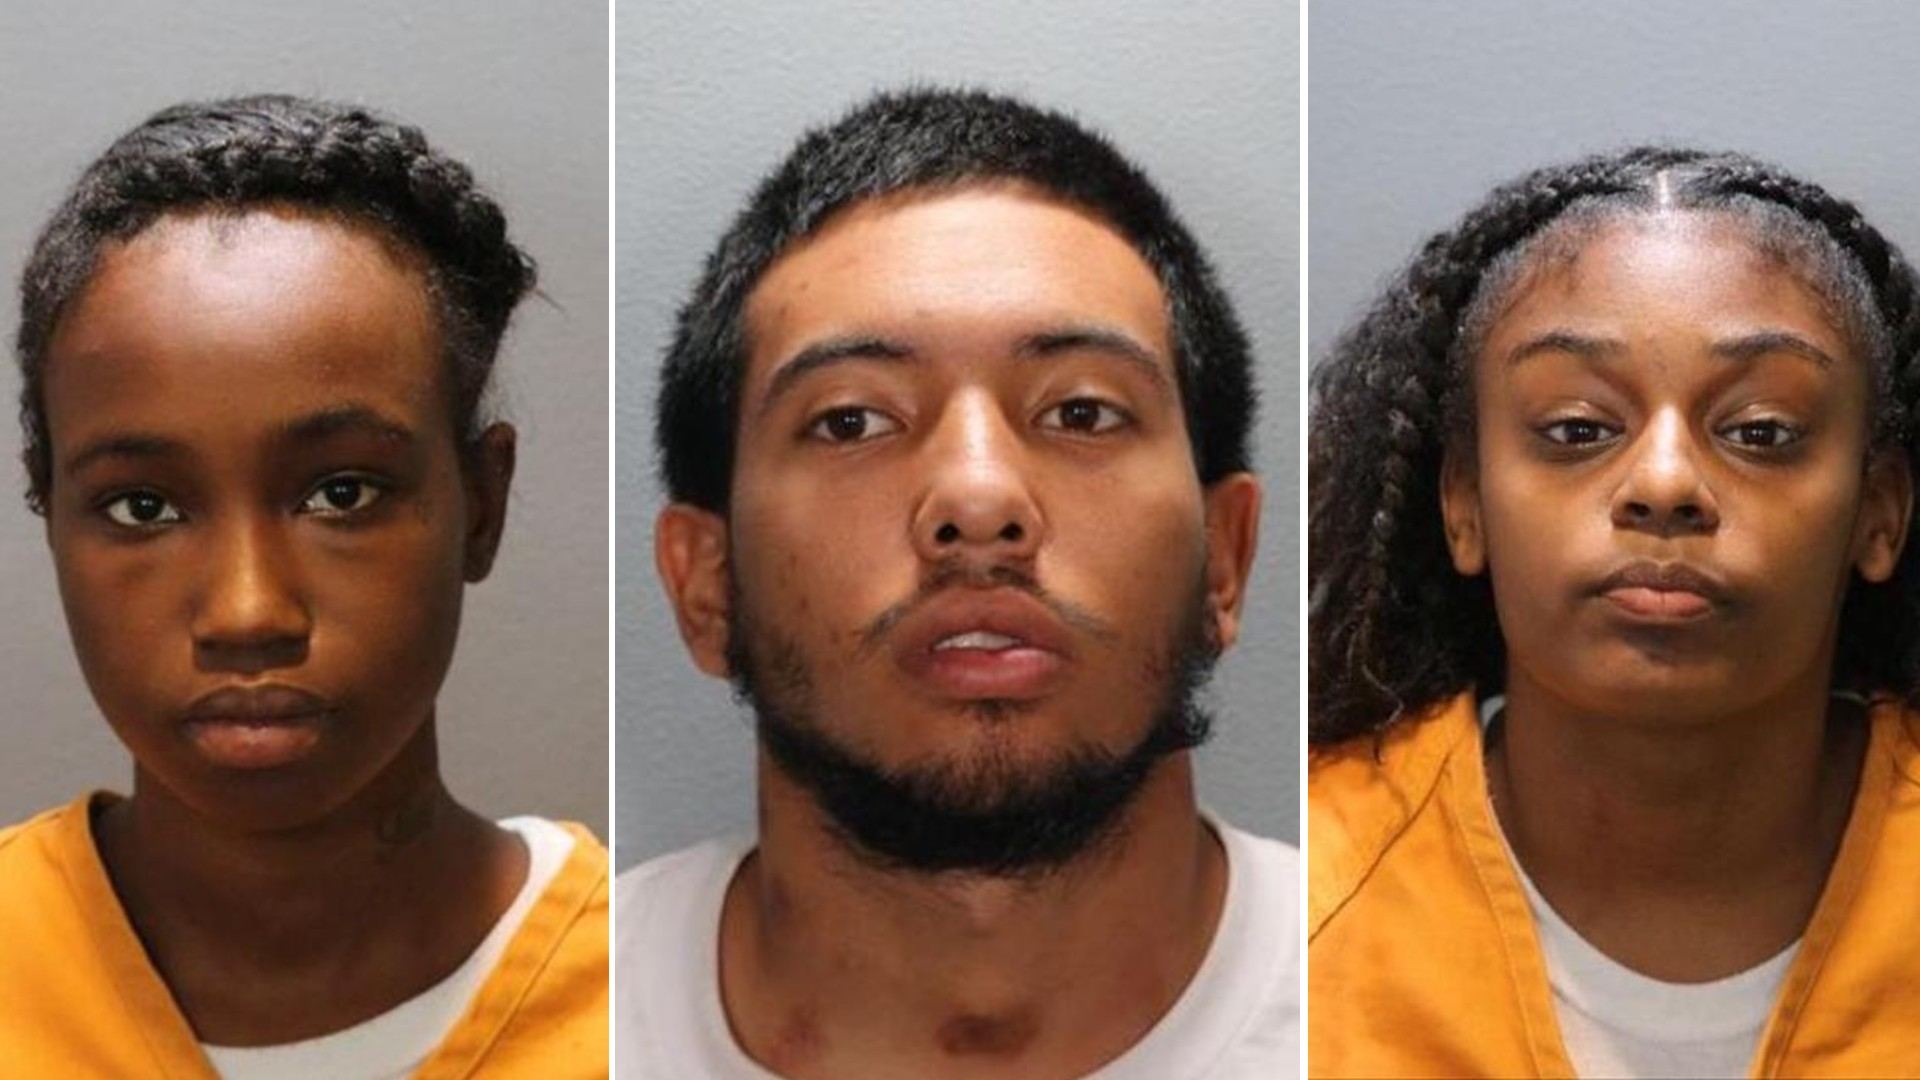 Asja Hansbrough, Tommy Dunmore and Kahjai Alford are seen in booking photos released by the Seal Beach Police Department on July 21, 2021.